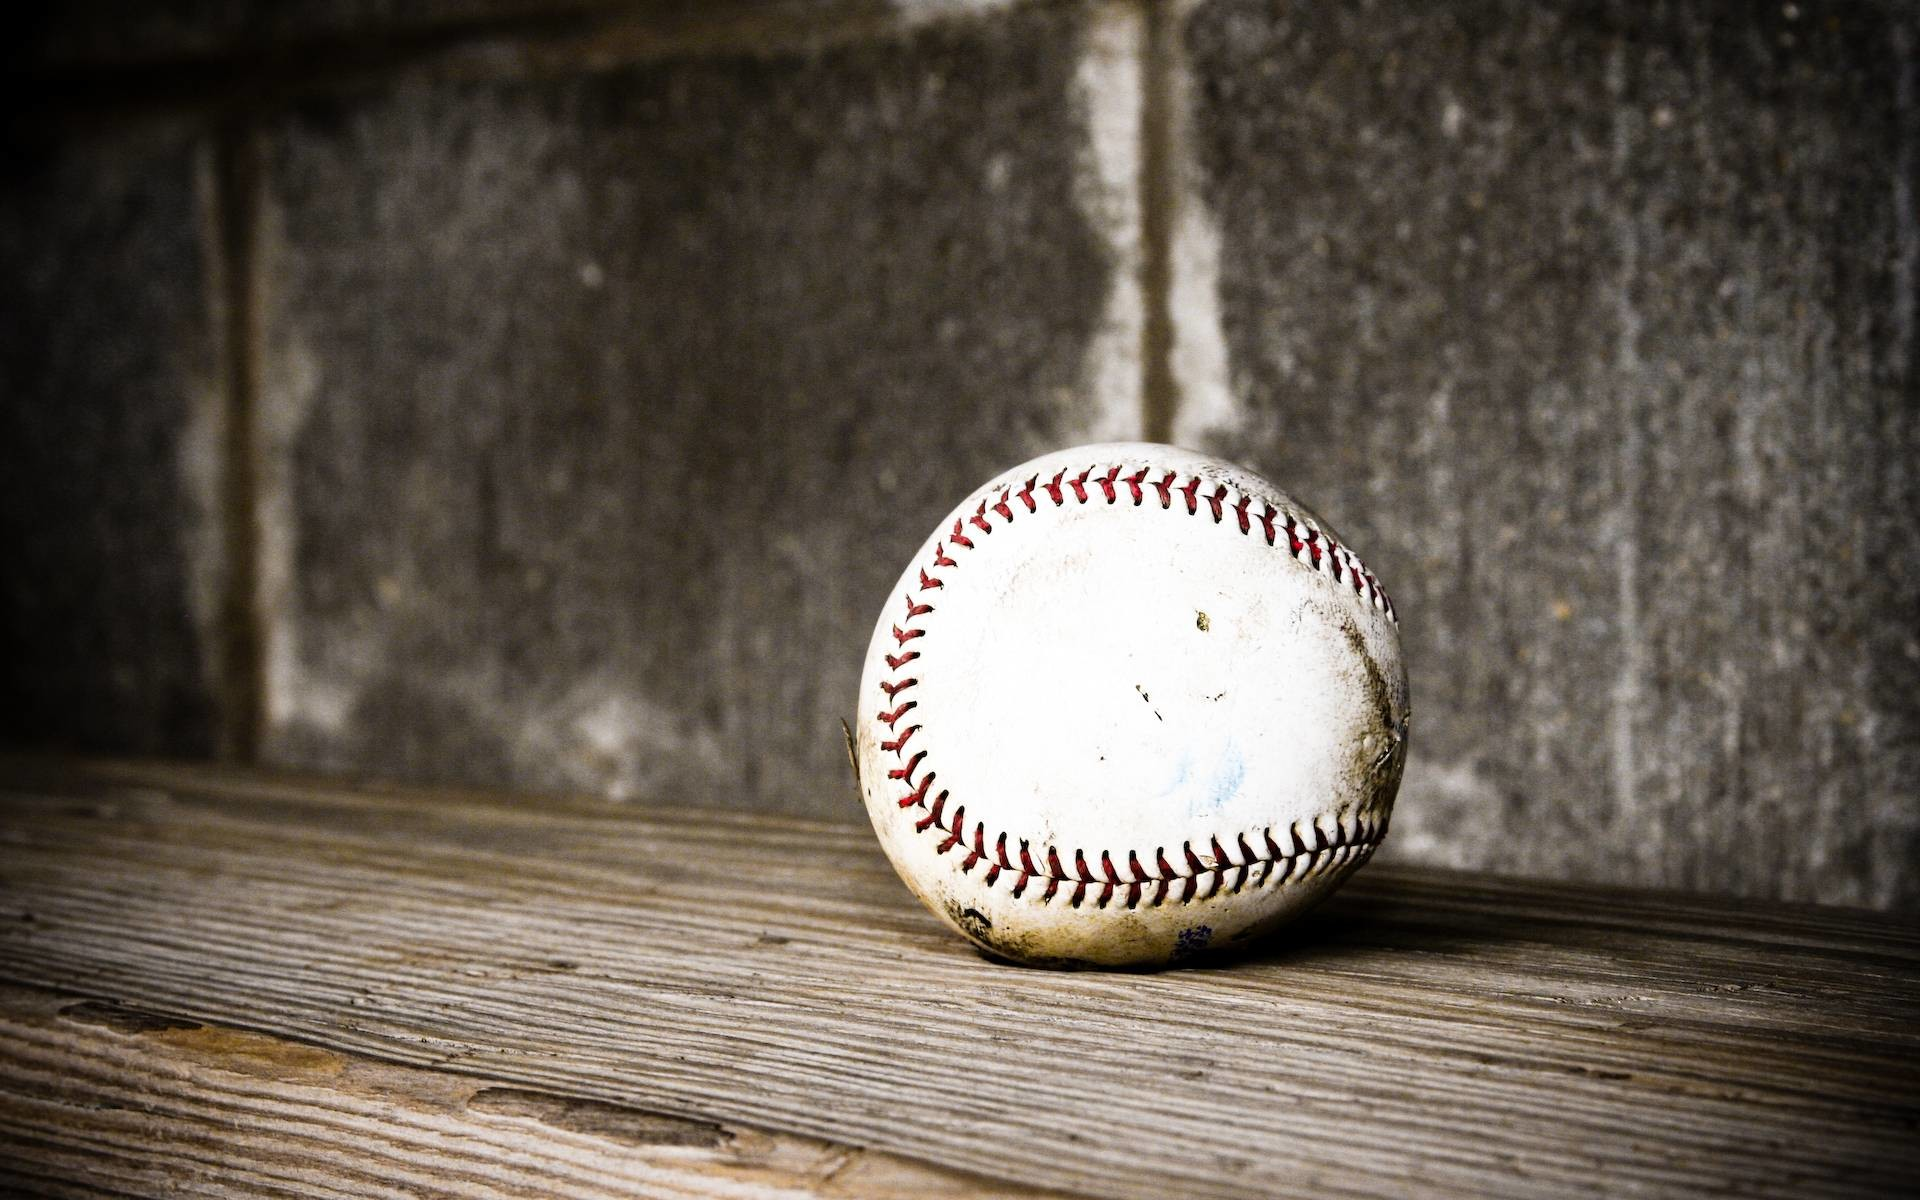 1920x1200 Baseball Wallpaper Collection For Free Download